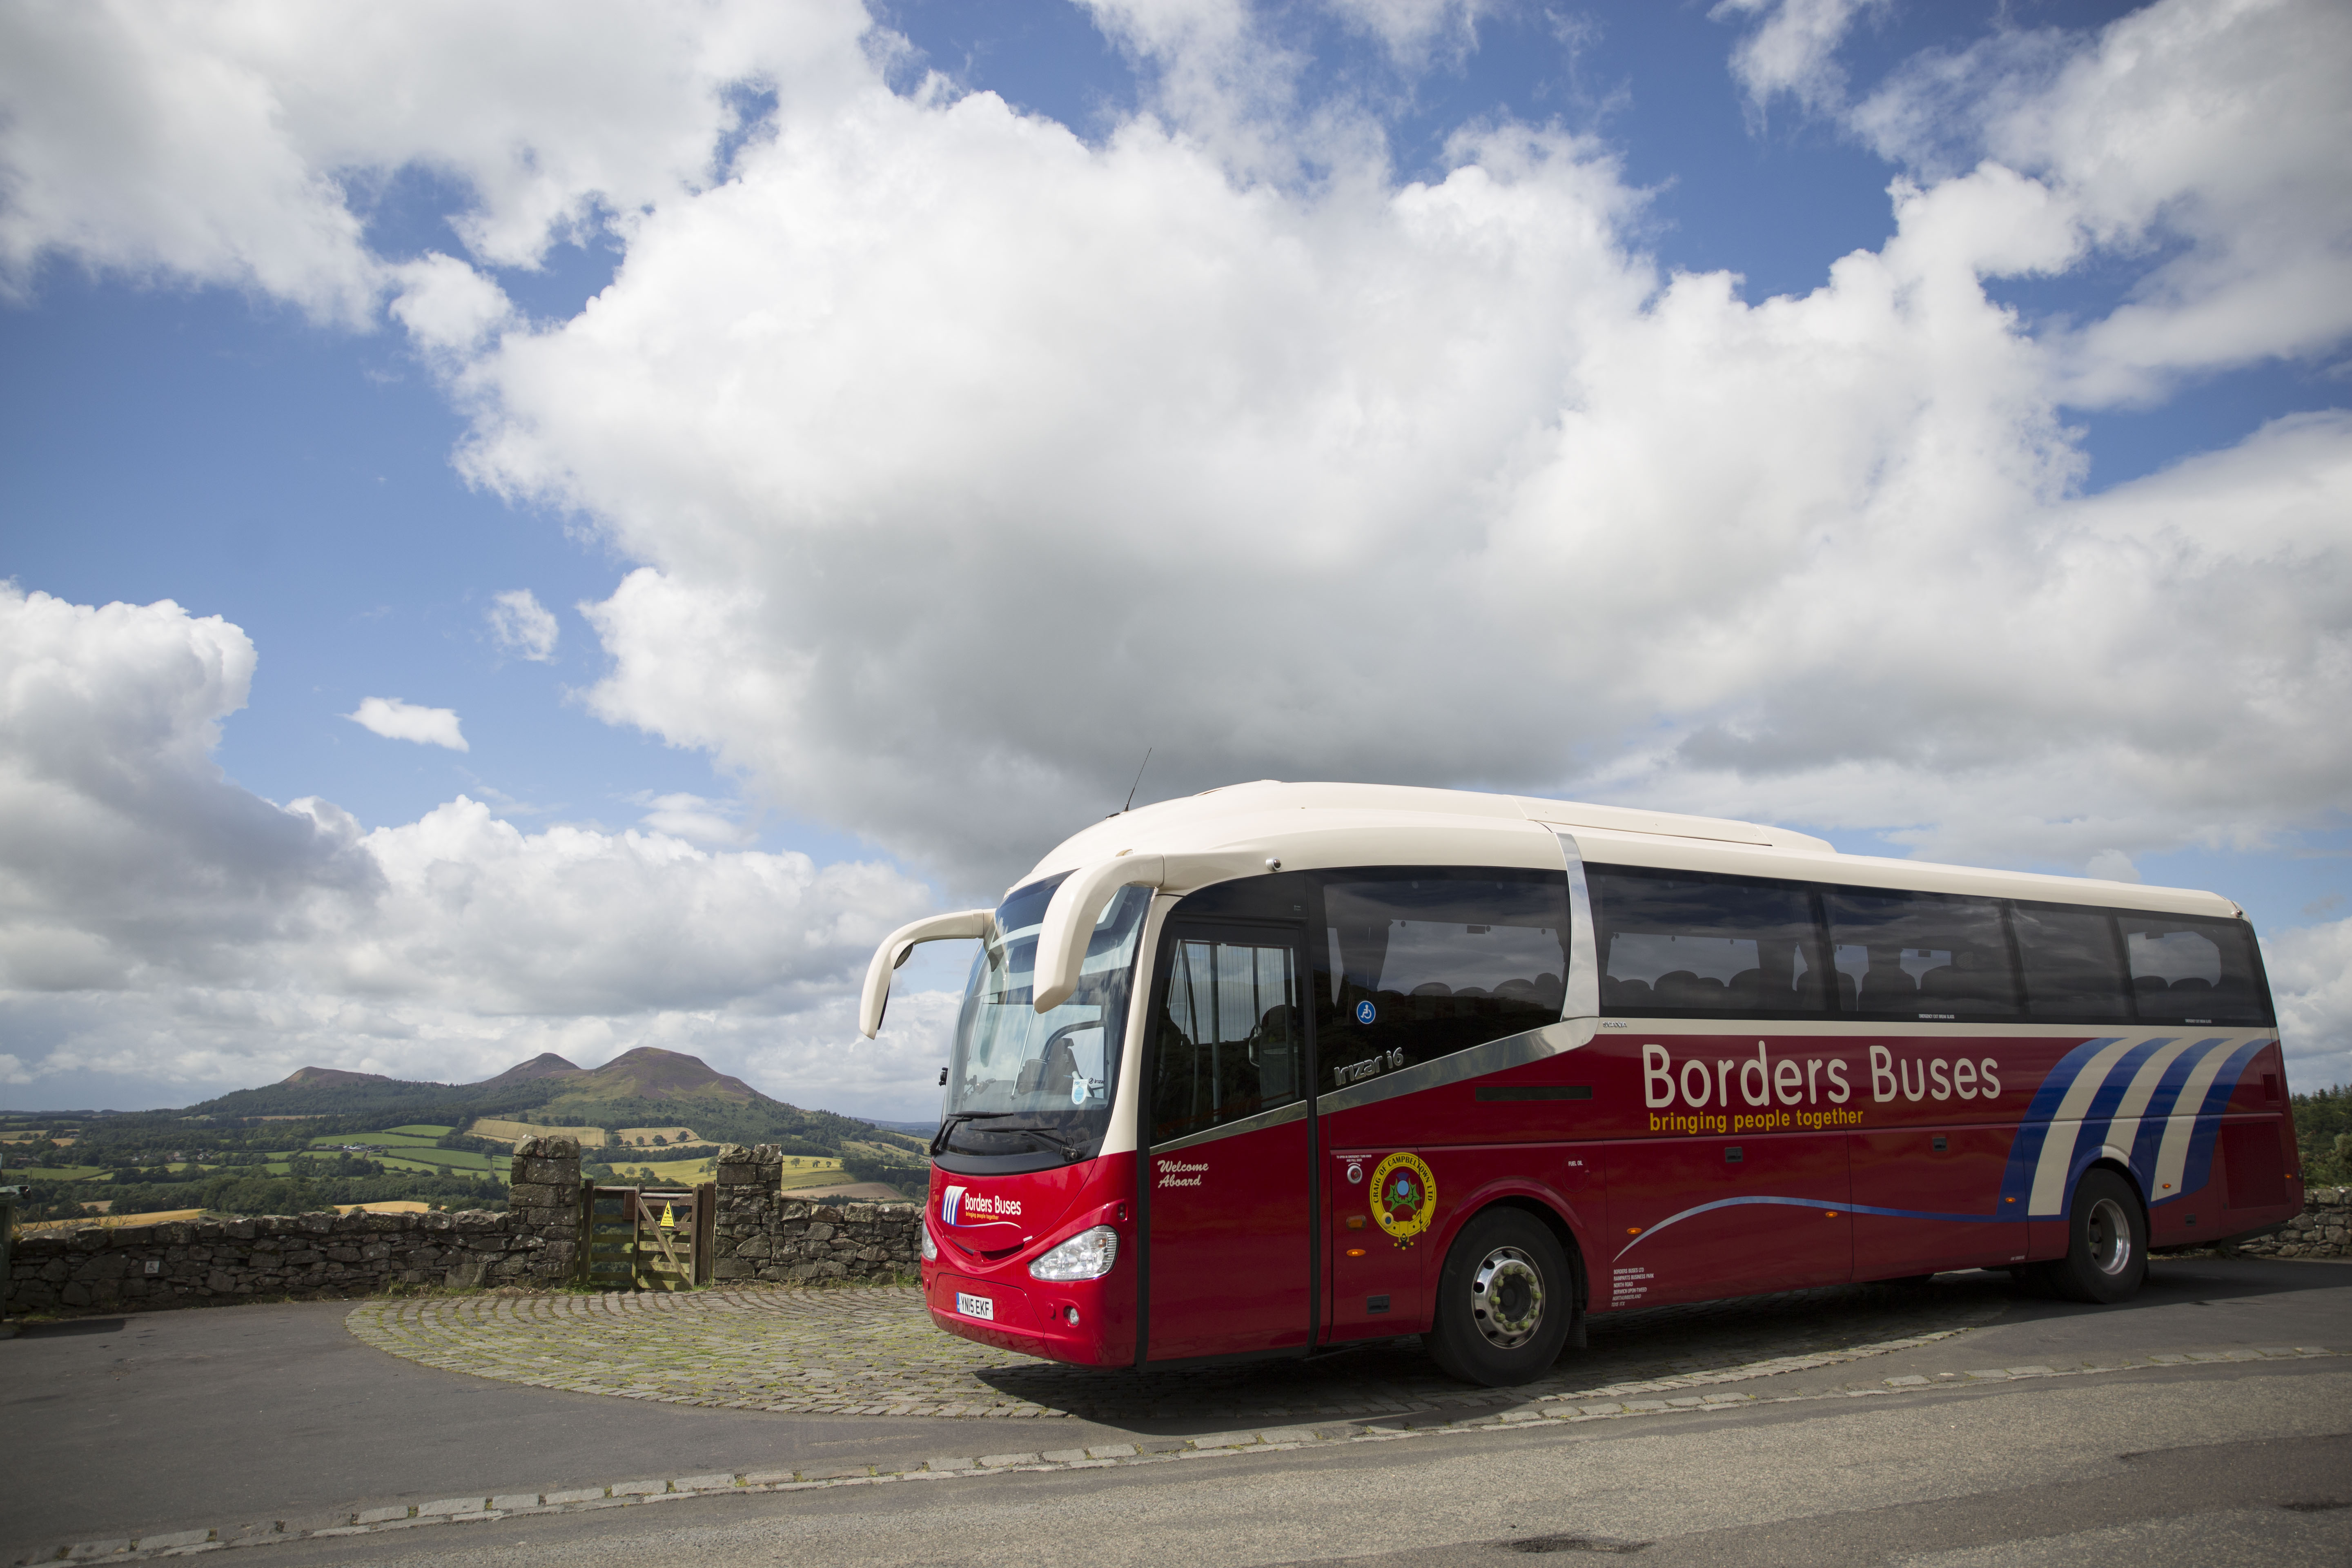 Borders buses red coach with Scotts view in the background